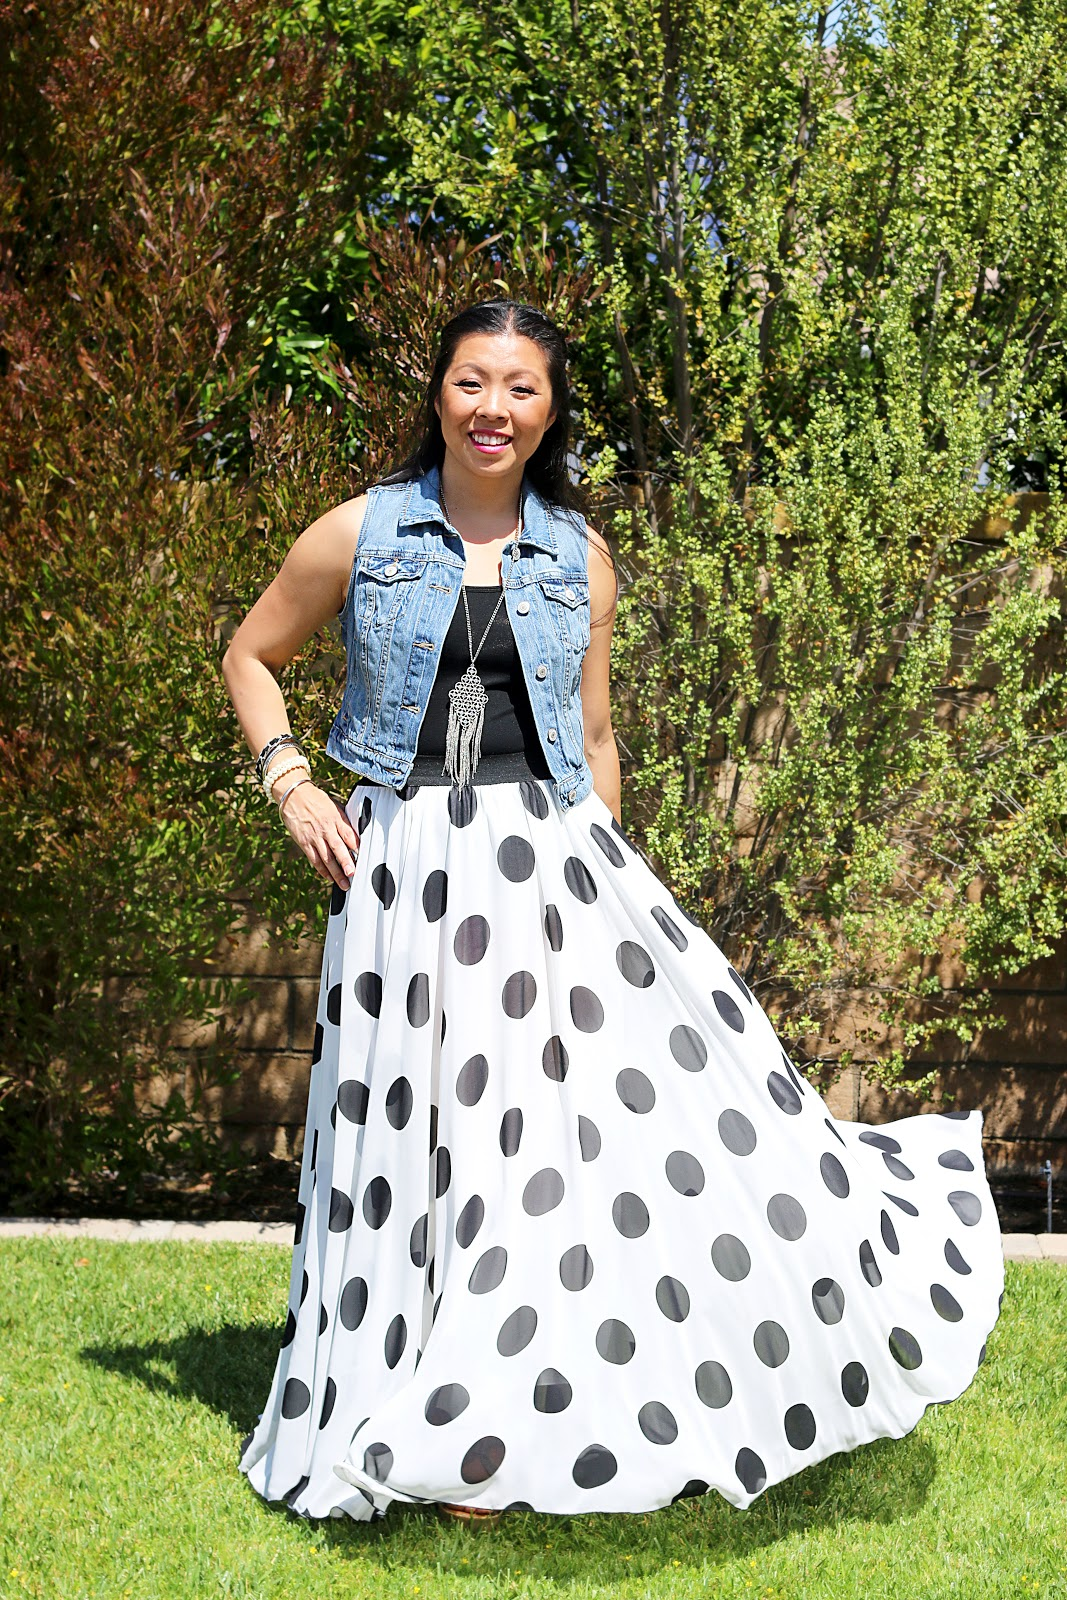 4 Awesomely Effortless Ways to Rock Your Polka Dot Skirt | bumblebits.co